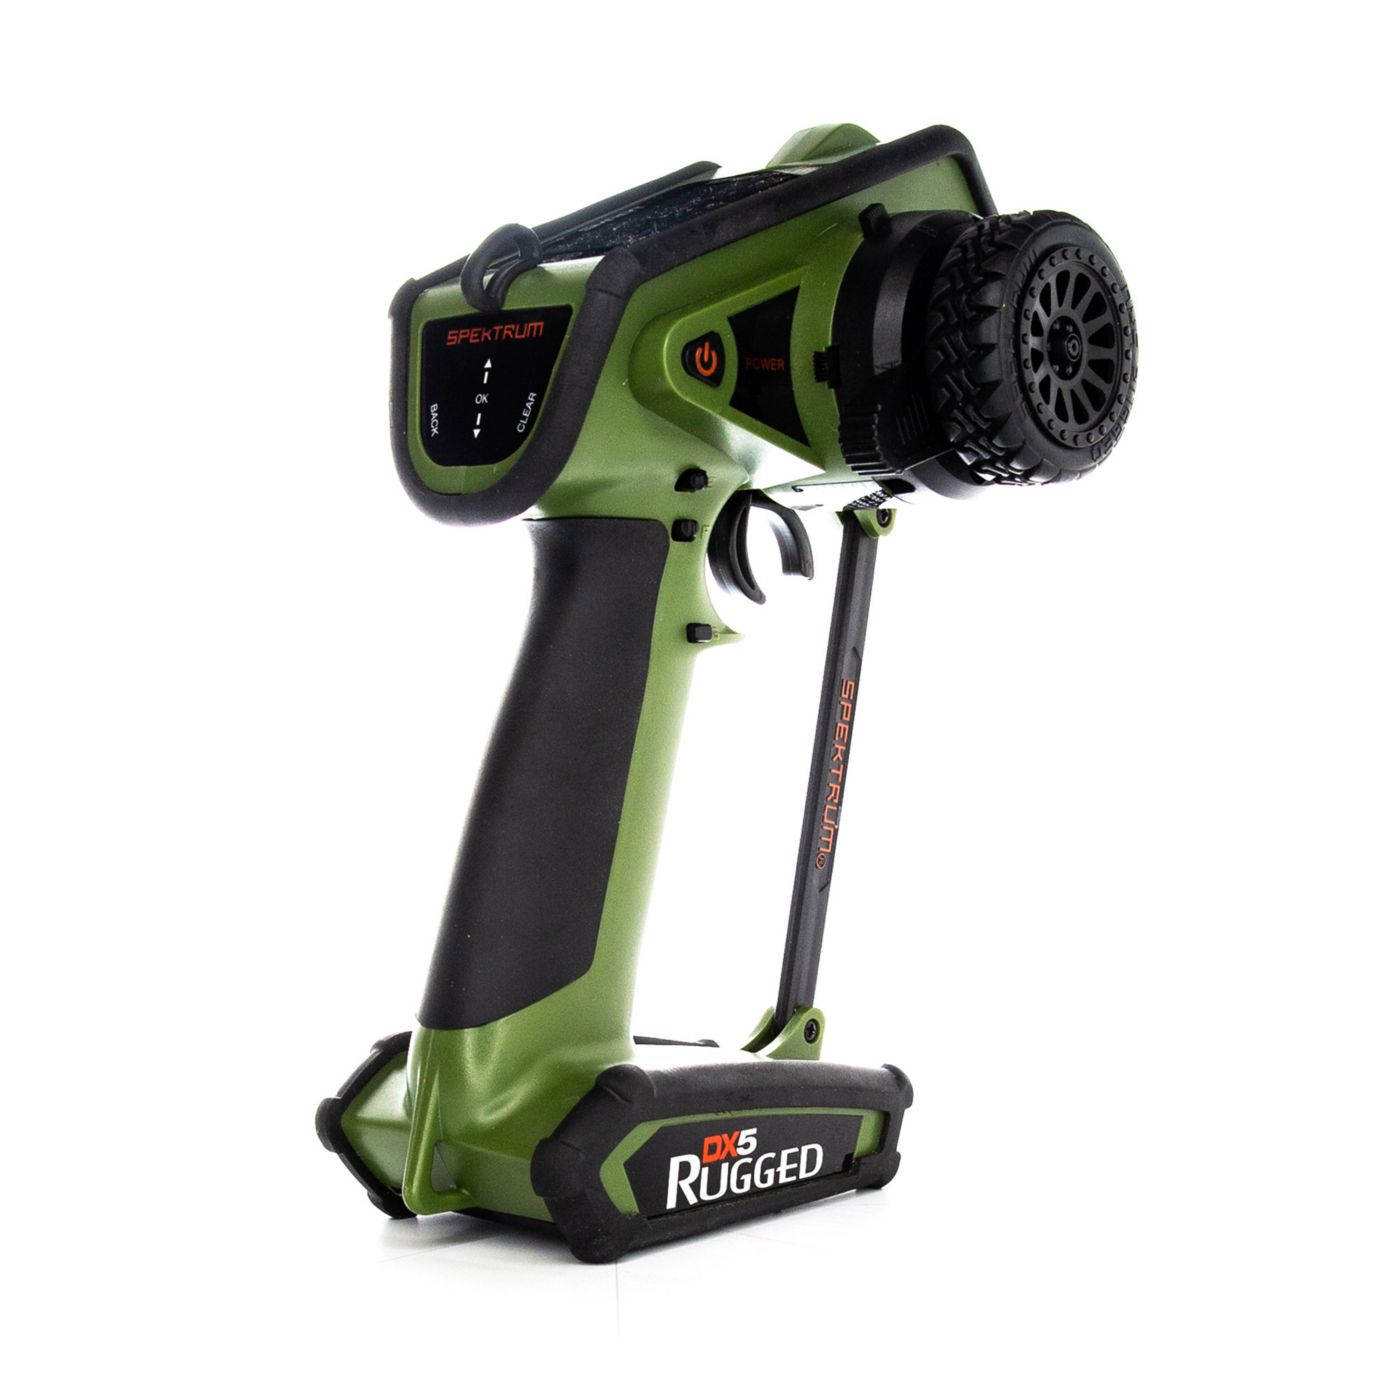 Spektrum DX5 Rugged 5-Channel DSMR Transmitter Only, Green